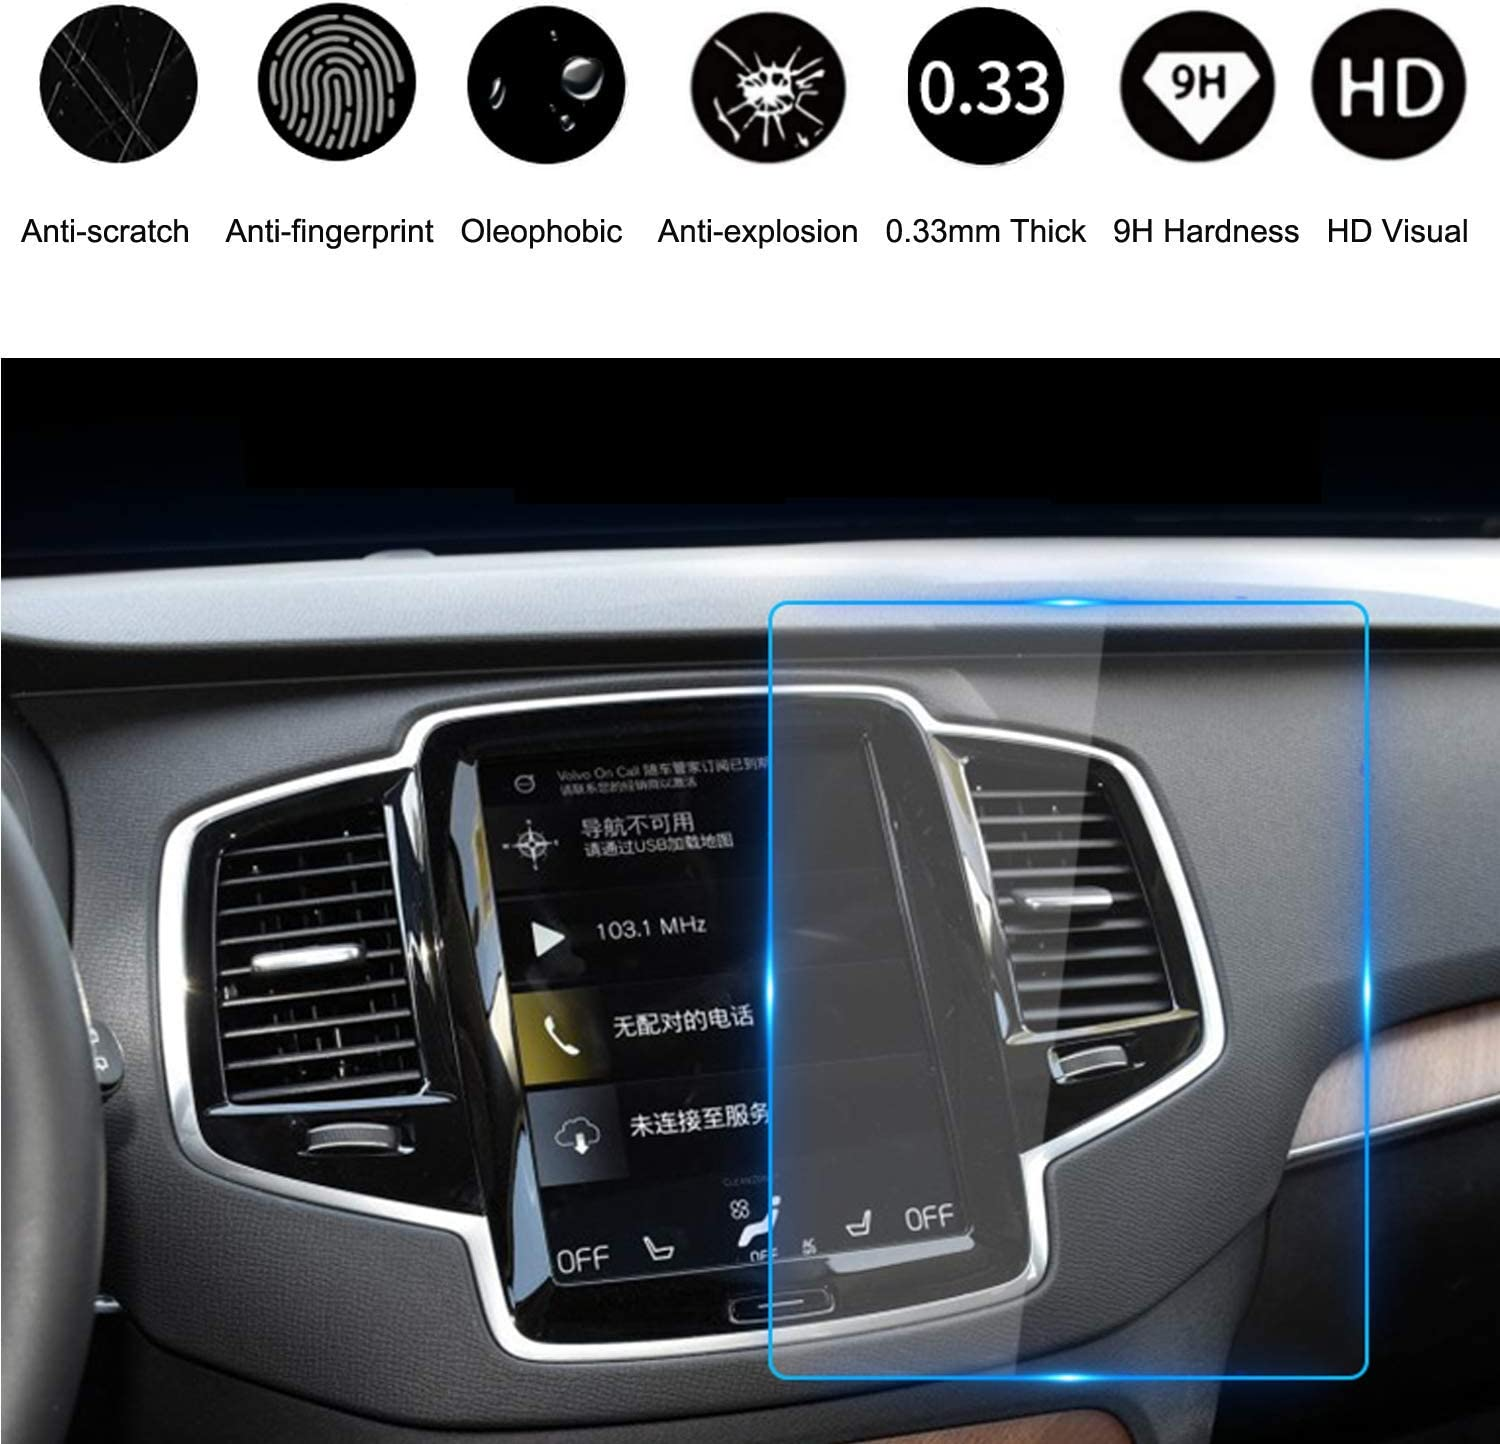 Premis Volvo Wireless Car Charger Fit for Volvo XC90 XC60